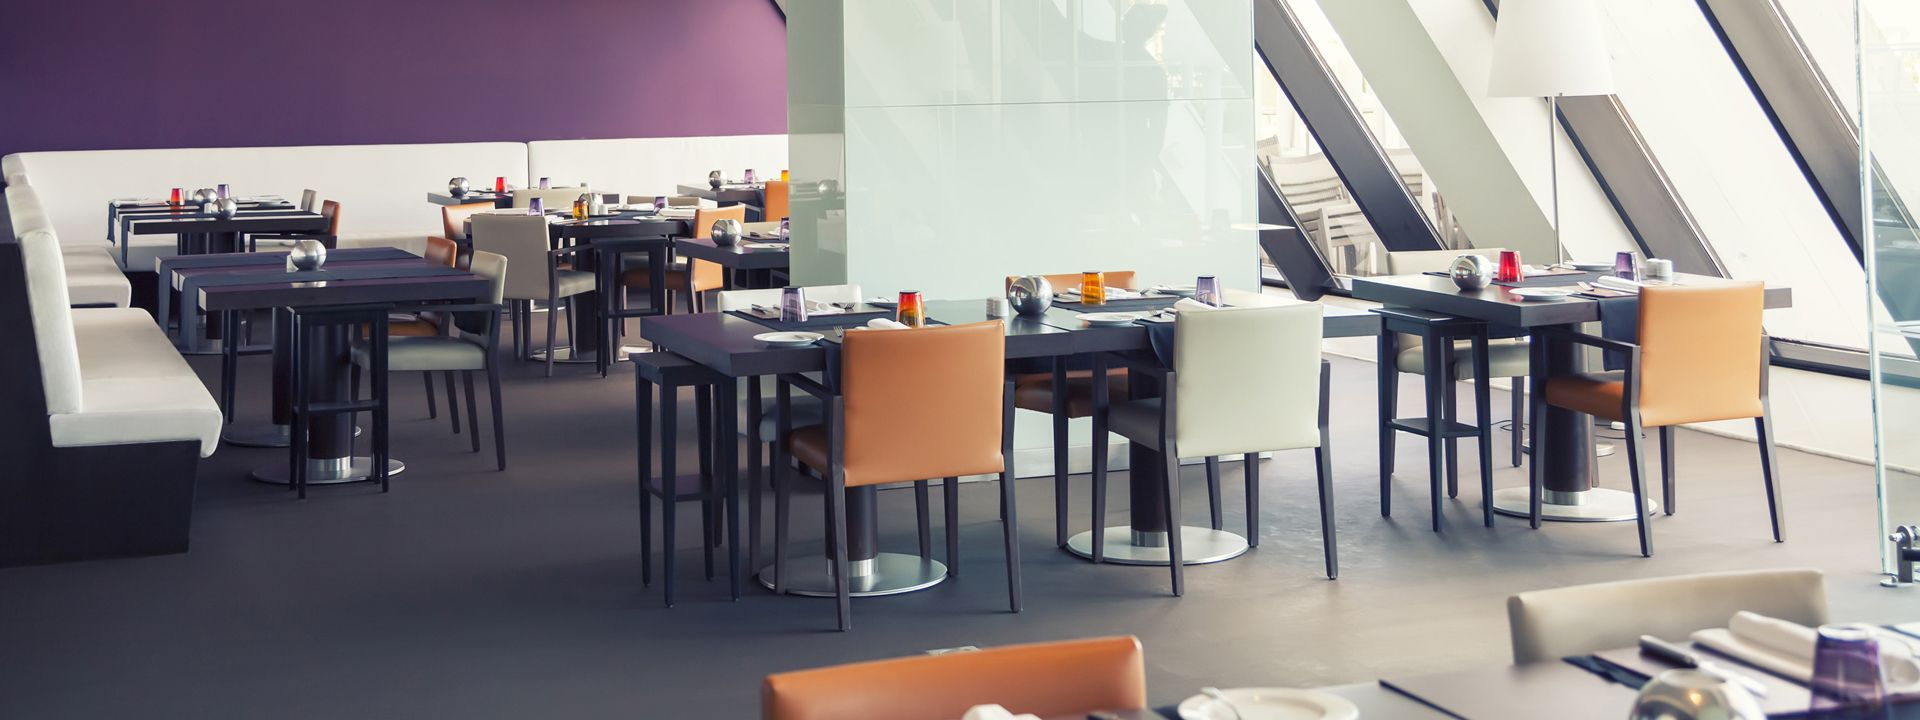 Mobilier Hotel Restaurant Mobilier Hotel Restaurant Made Crotoy